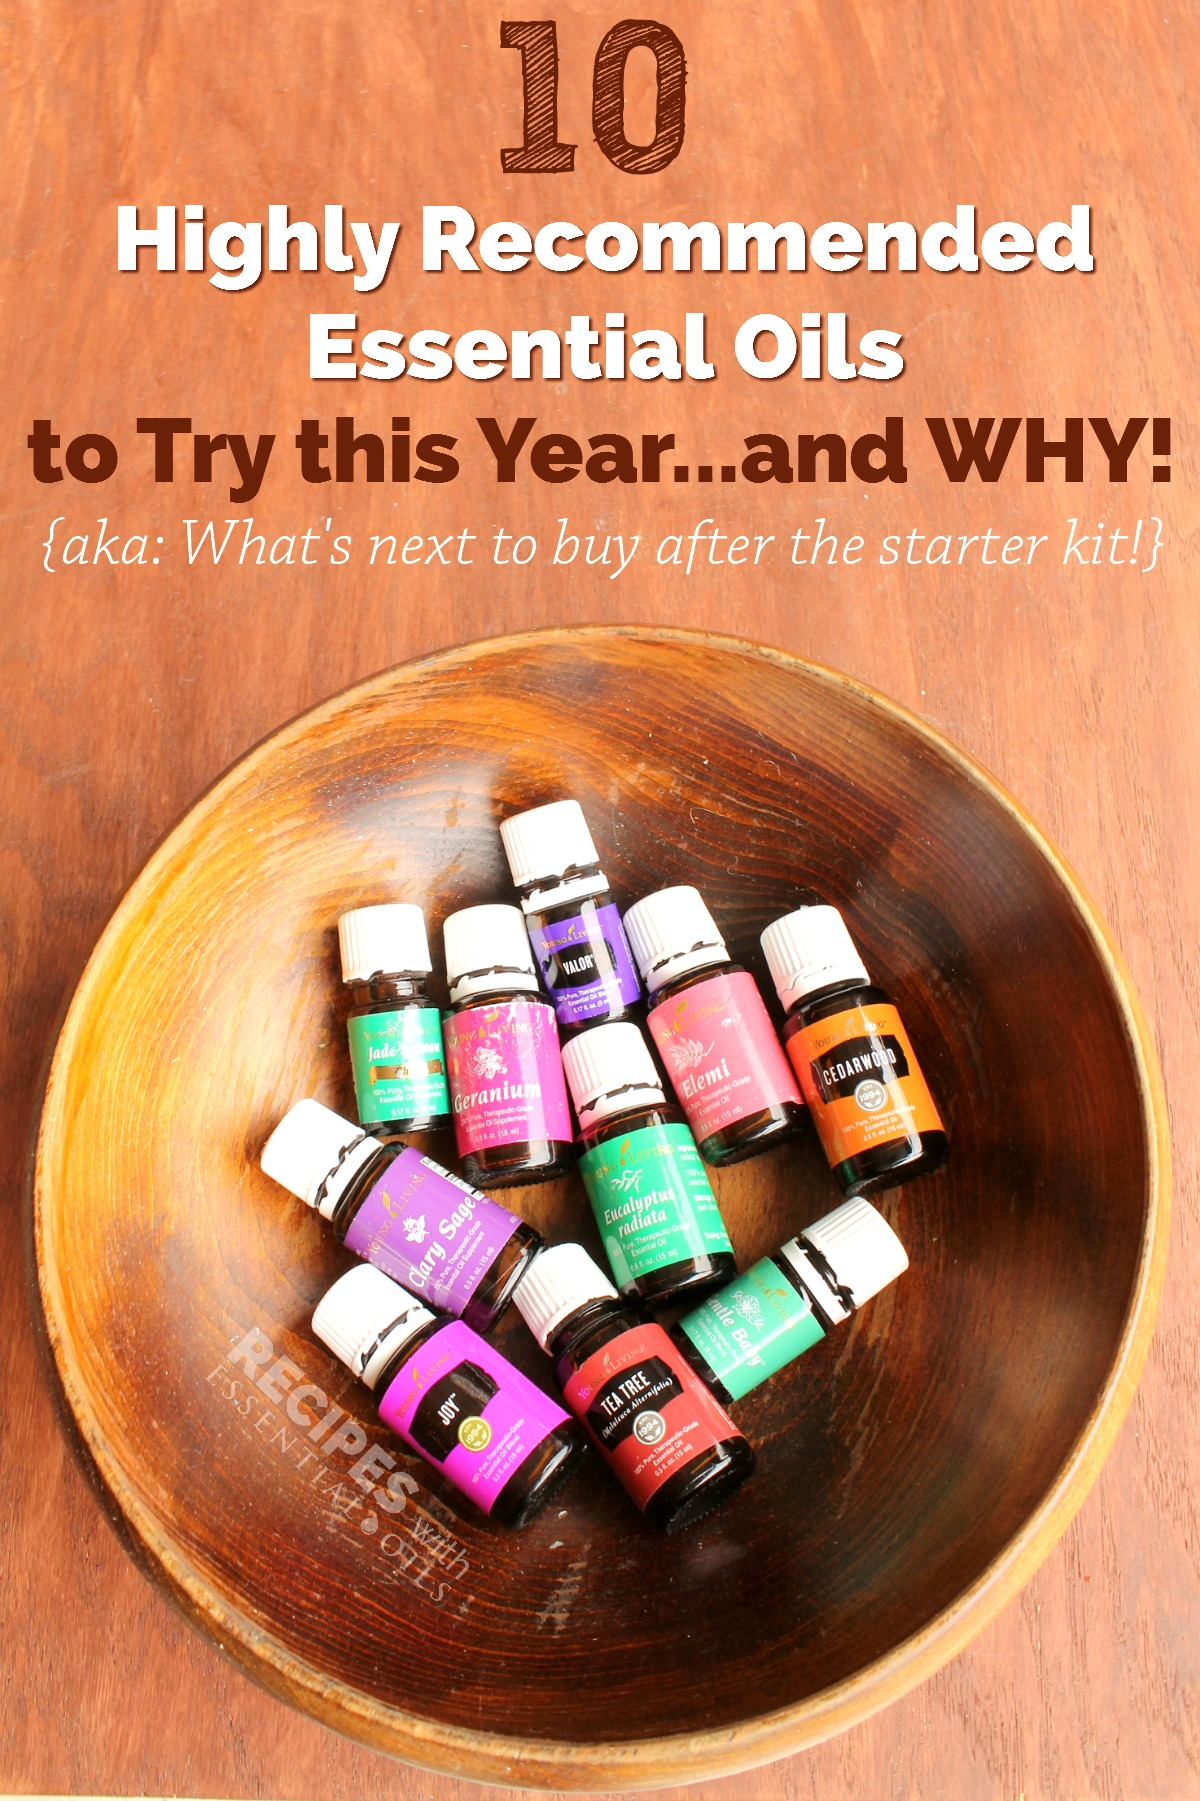 10 EOs to try this year after the starter kit from RecipeswithEssentialOils.com